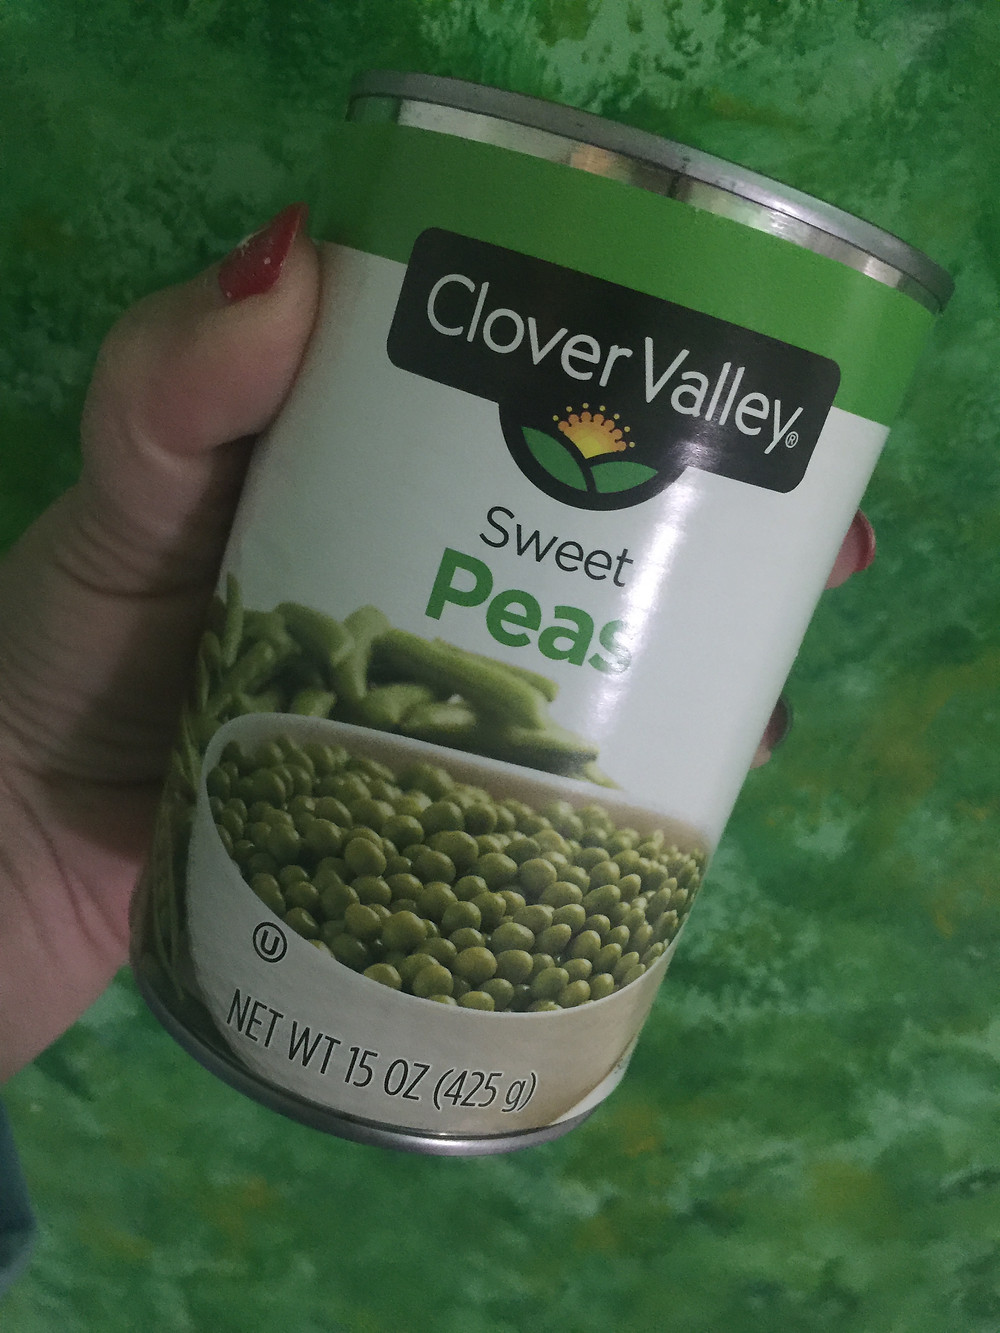 Lady holding a can of clover valley peas